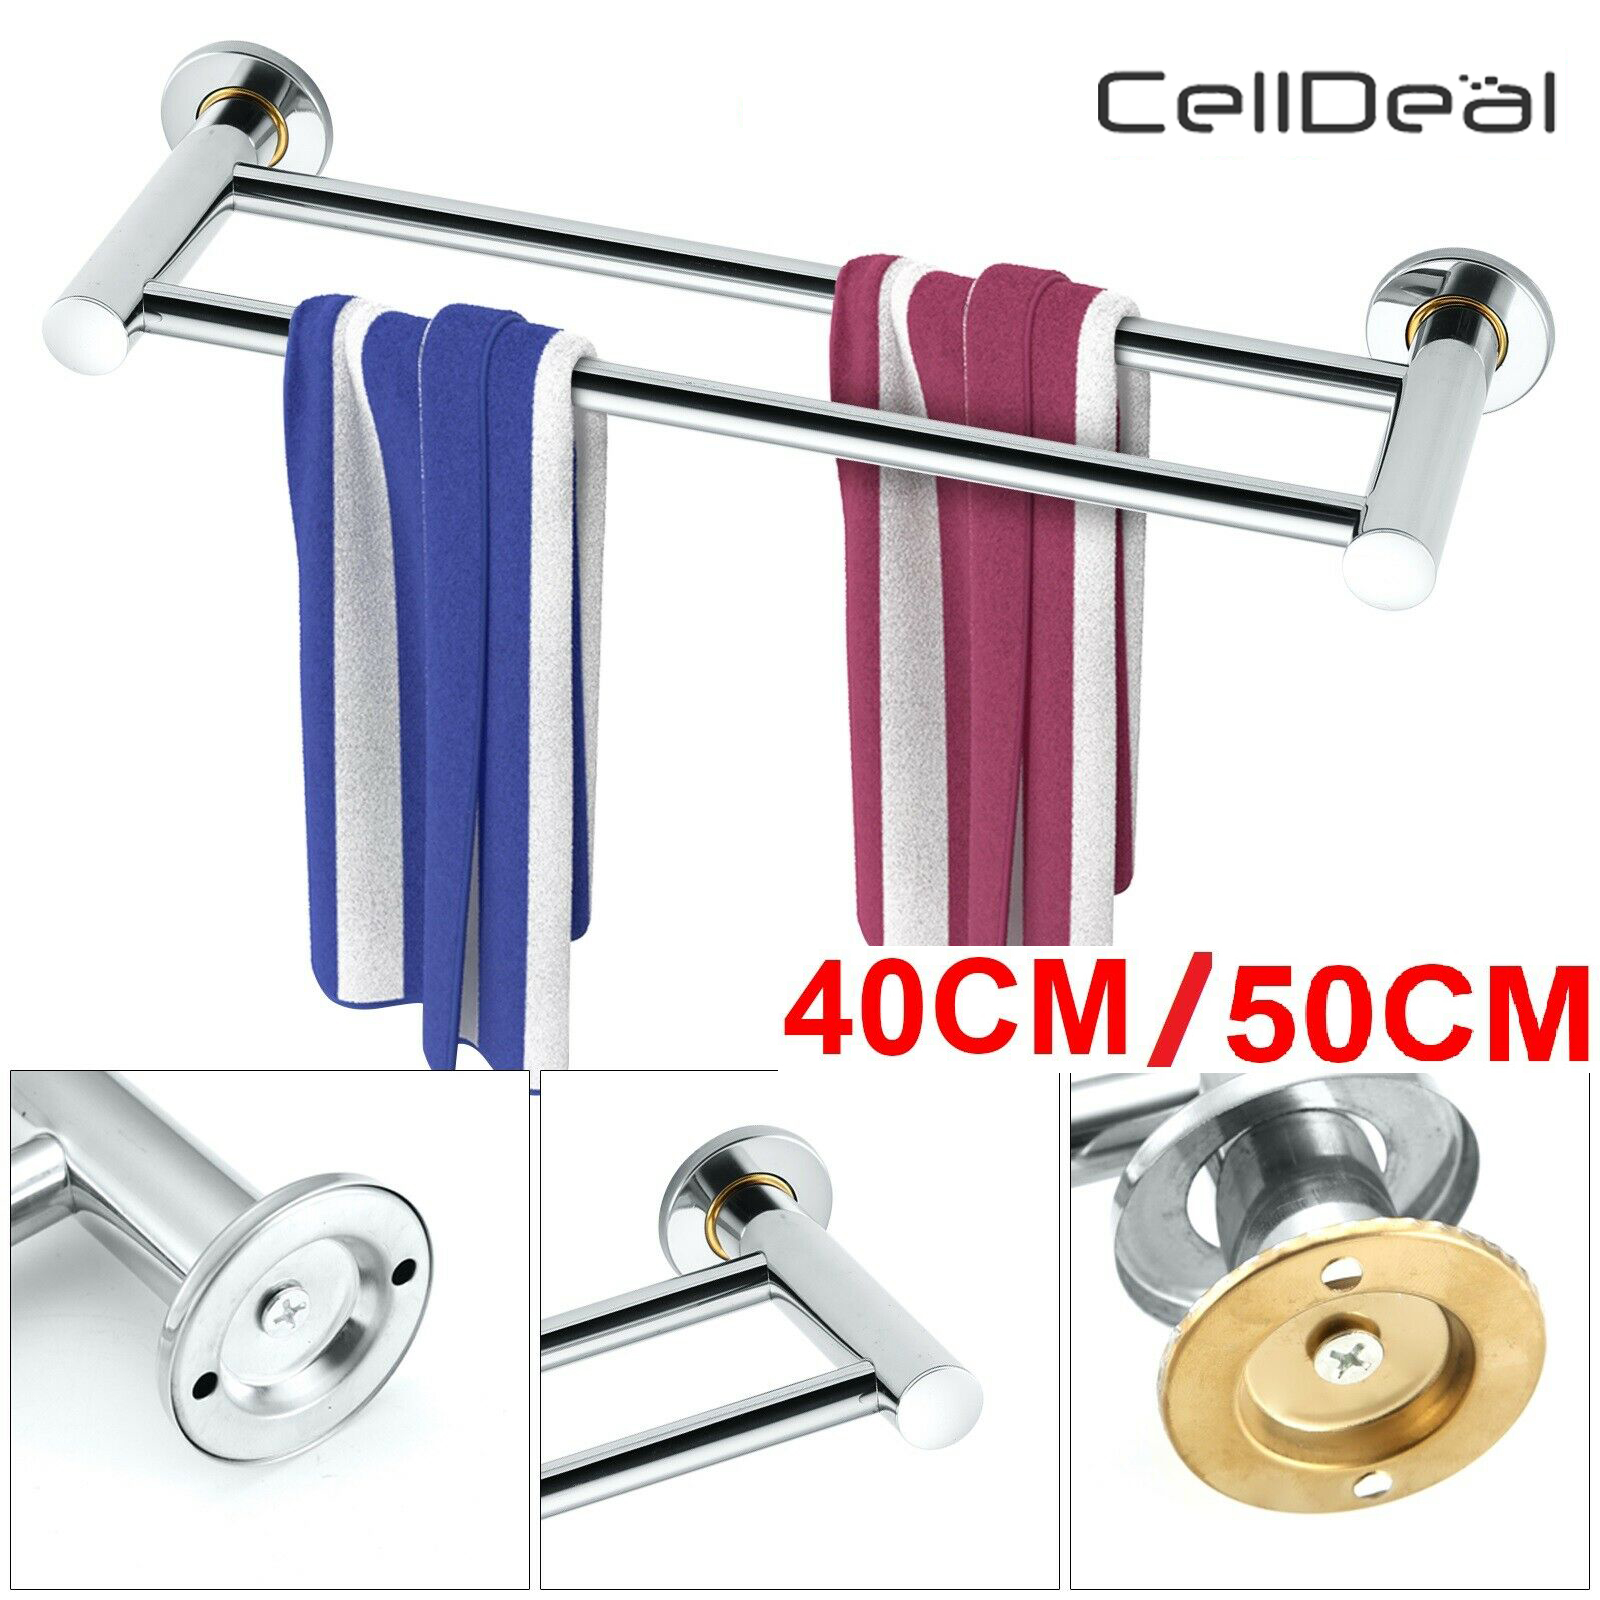 Multifunctional Anti-rust 2 Layer Wall-Mounted Stainless Steel Towel Rack Bathroom Kitchen Wall Organizer Towel Rail Holder